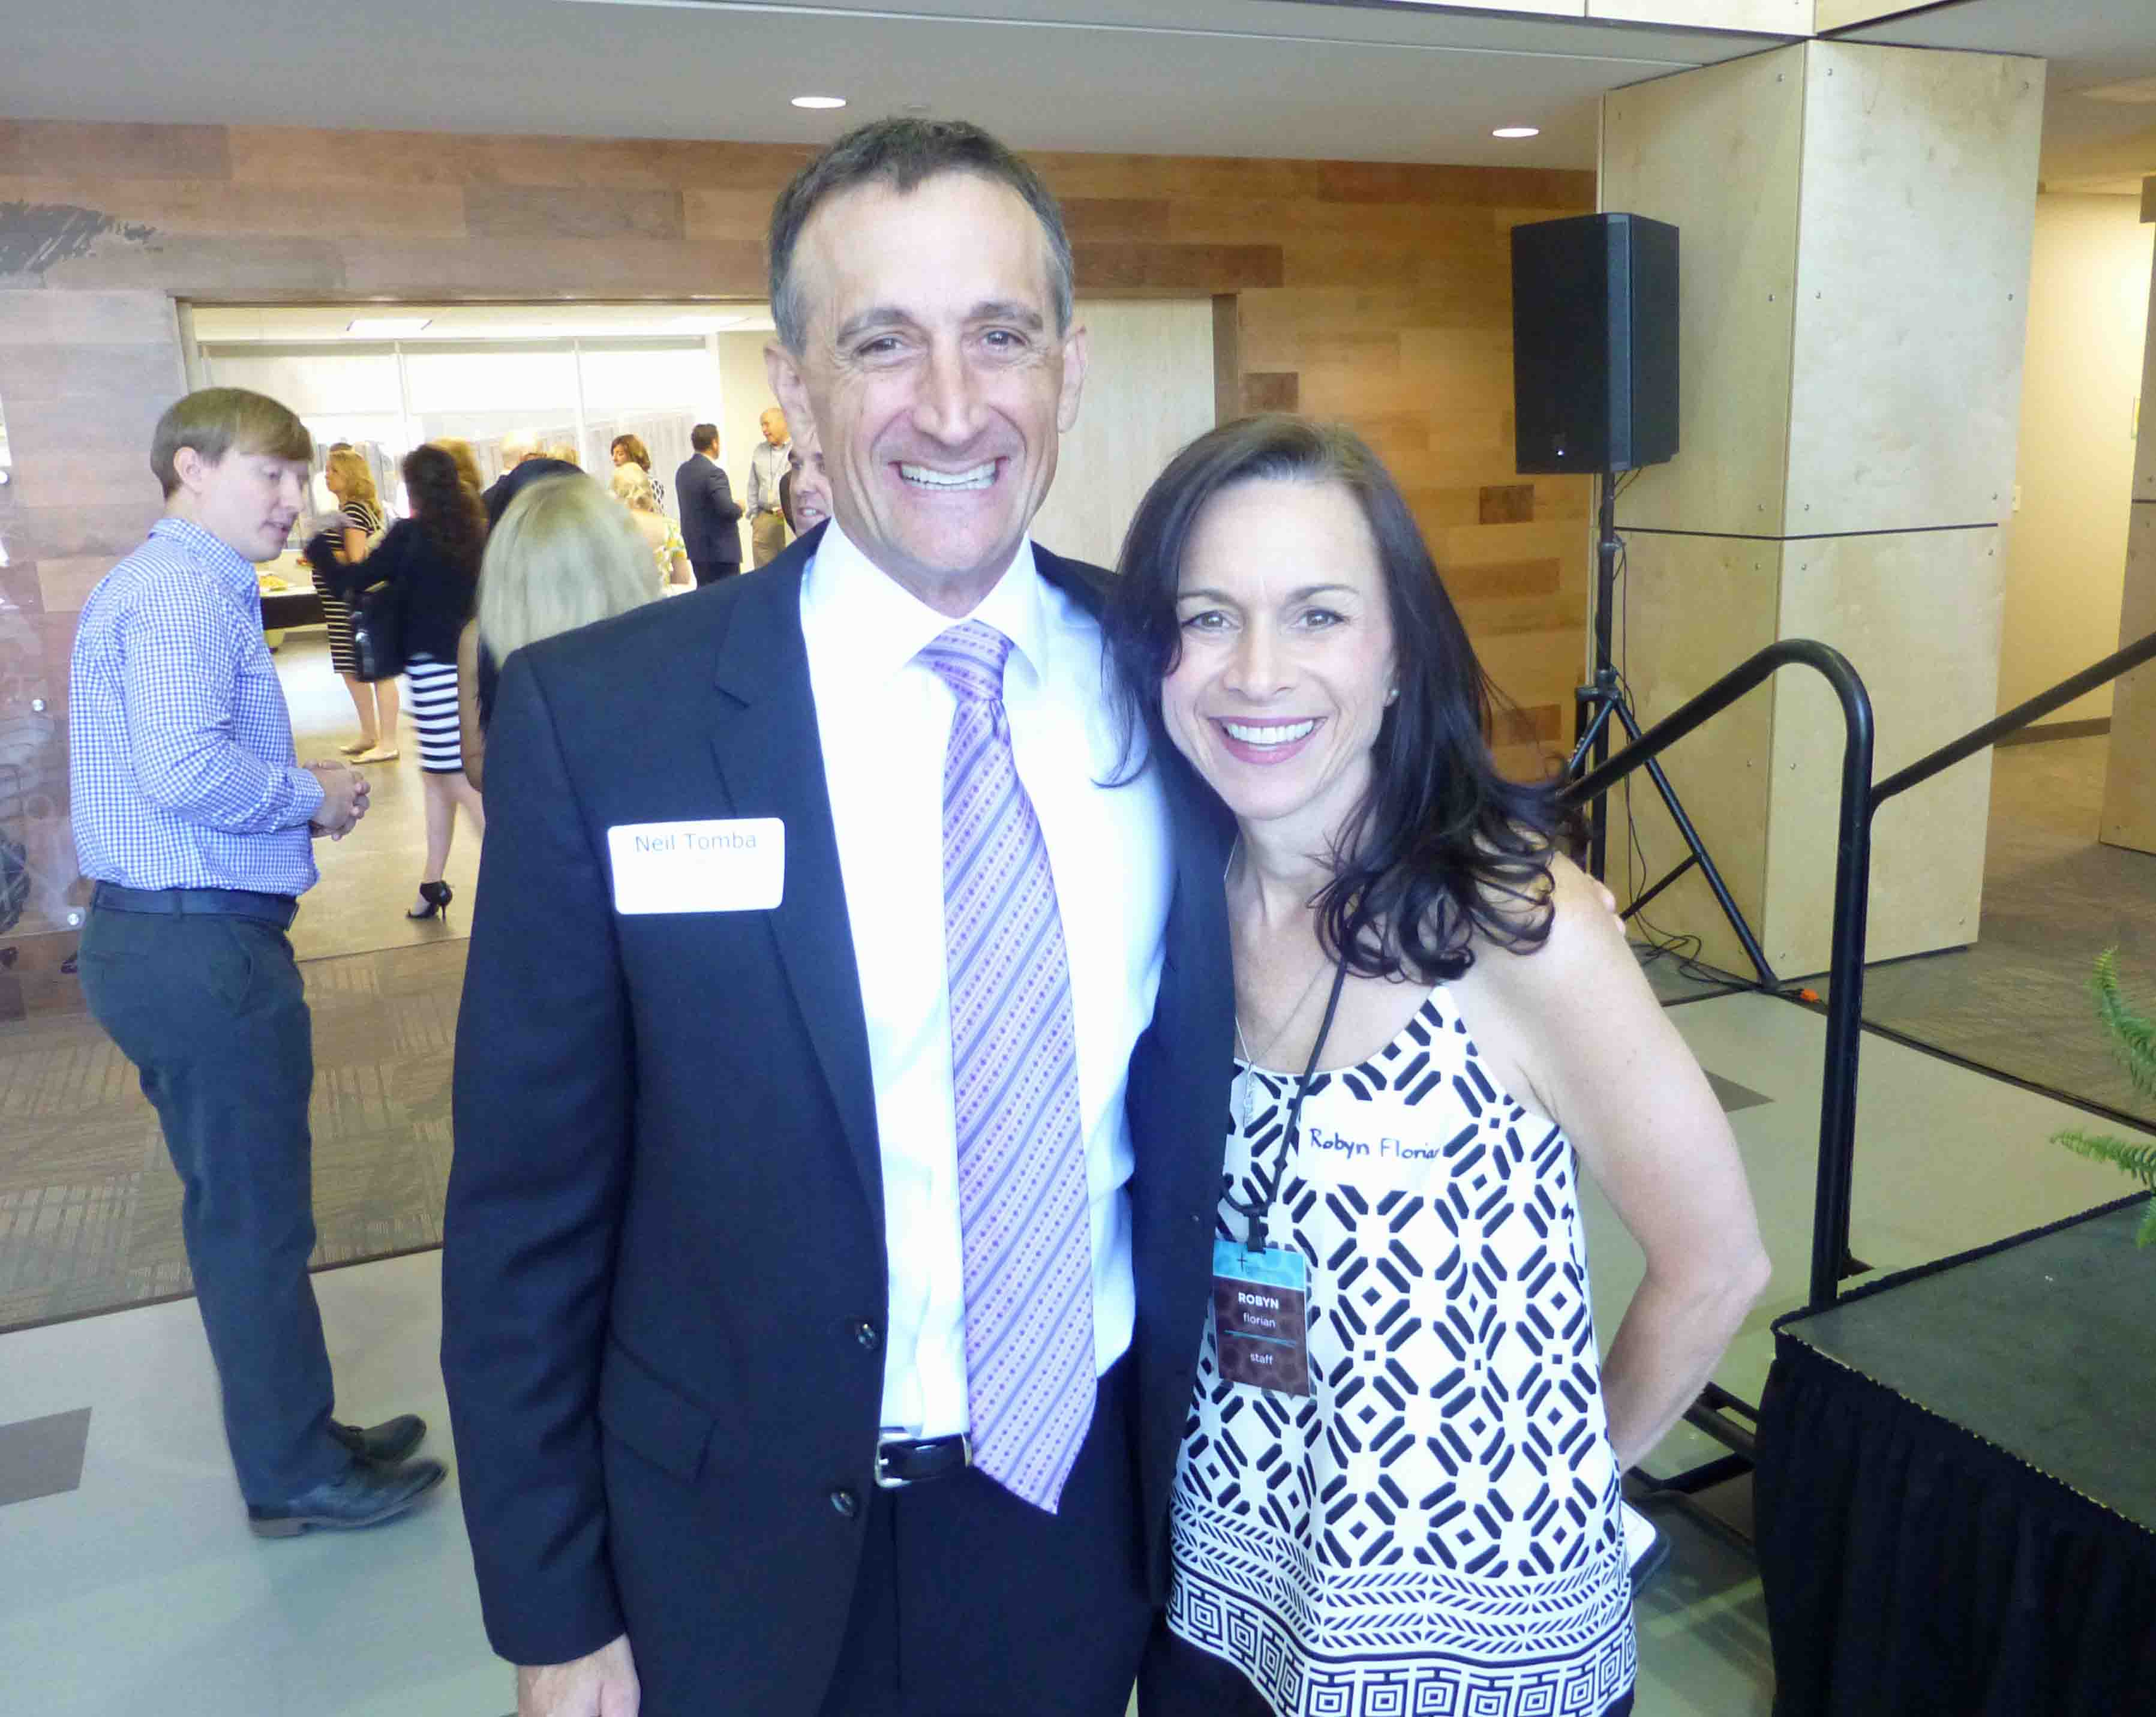 Pastor Neil Tomba and Robyn Florian of Northwest Bible Church